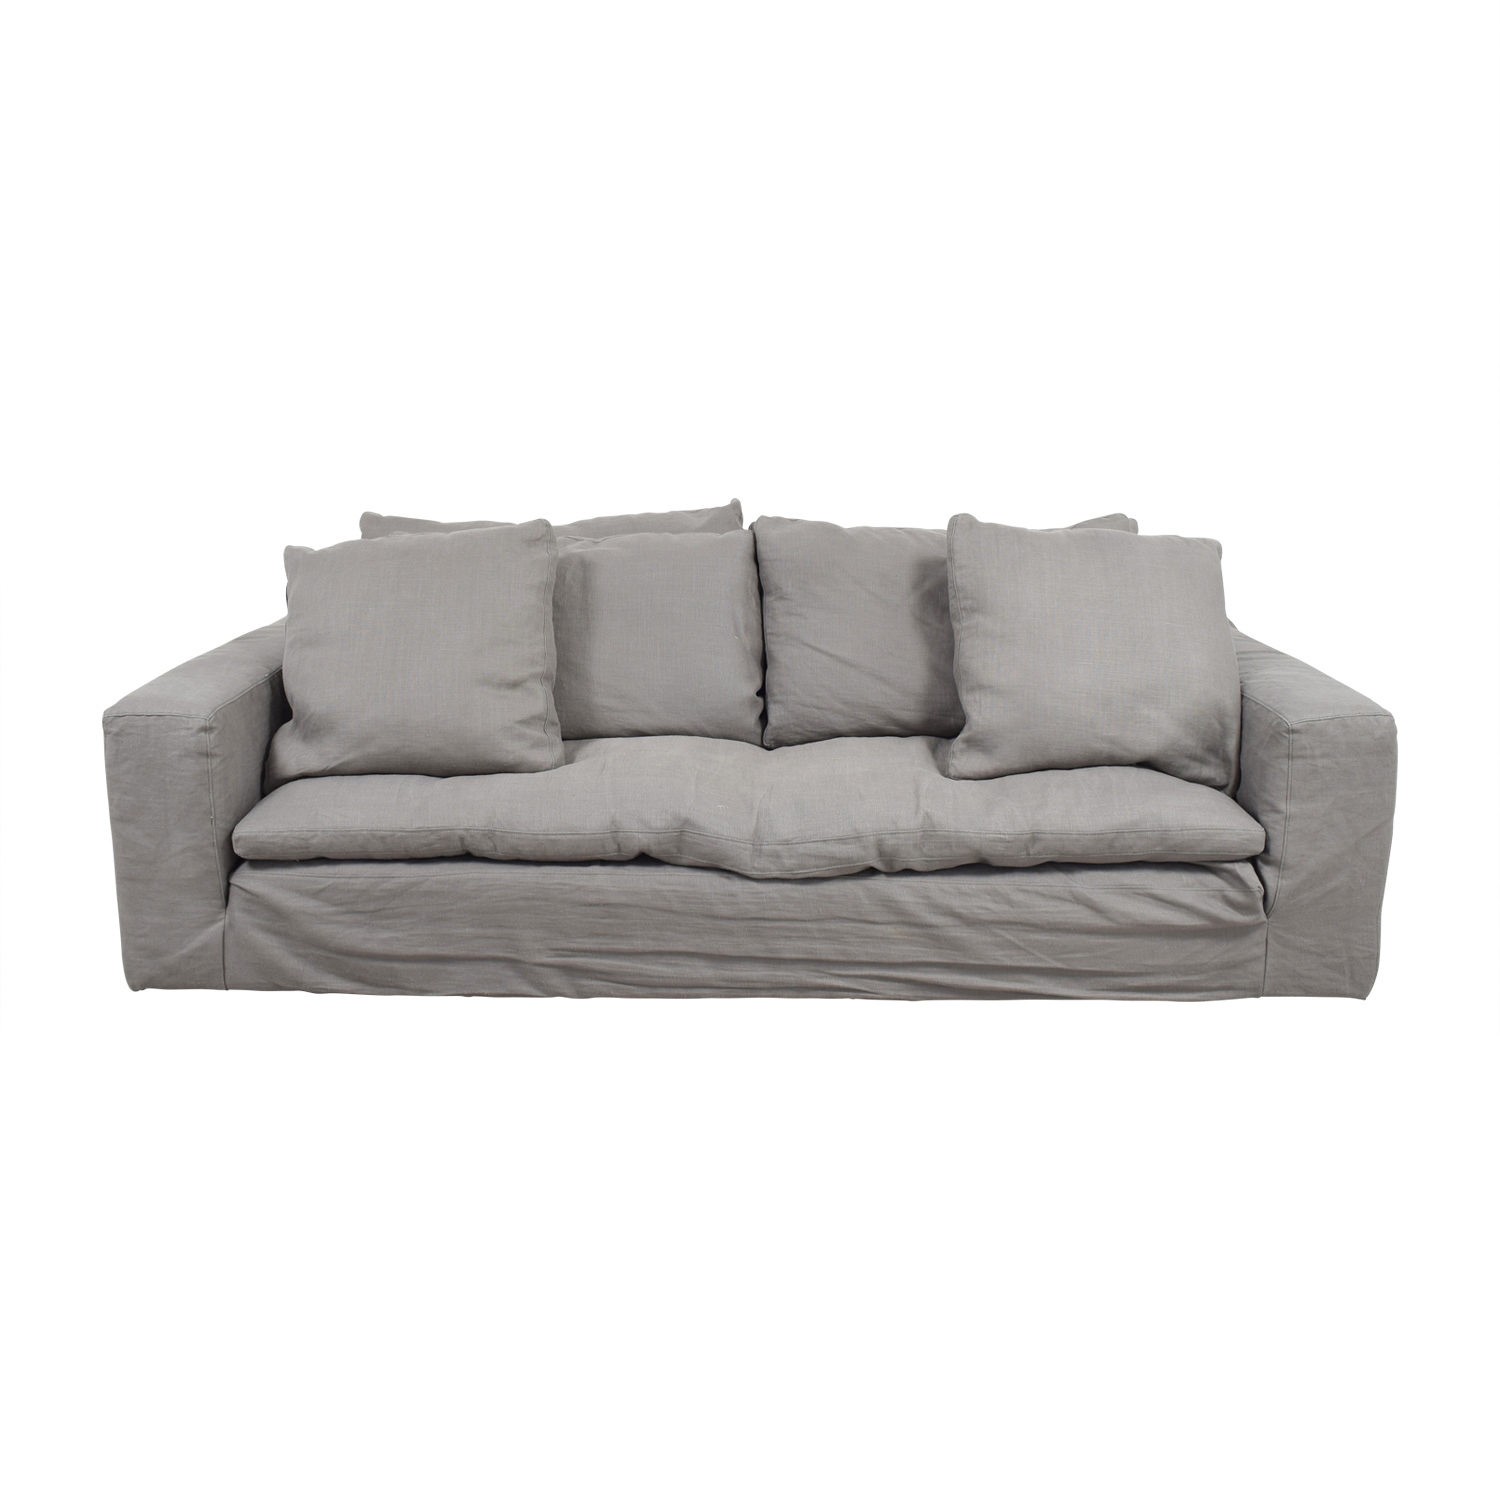 Restoration Hardware Restoration Hardware Grey Cloud Sofa for sale